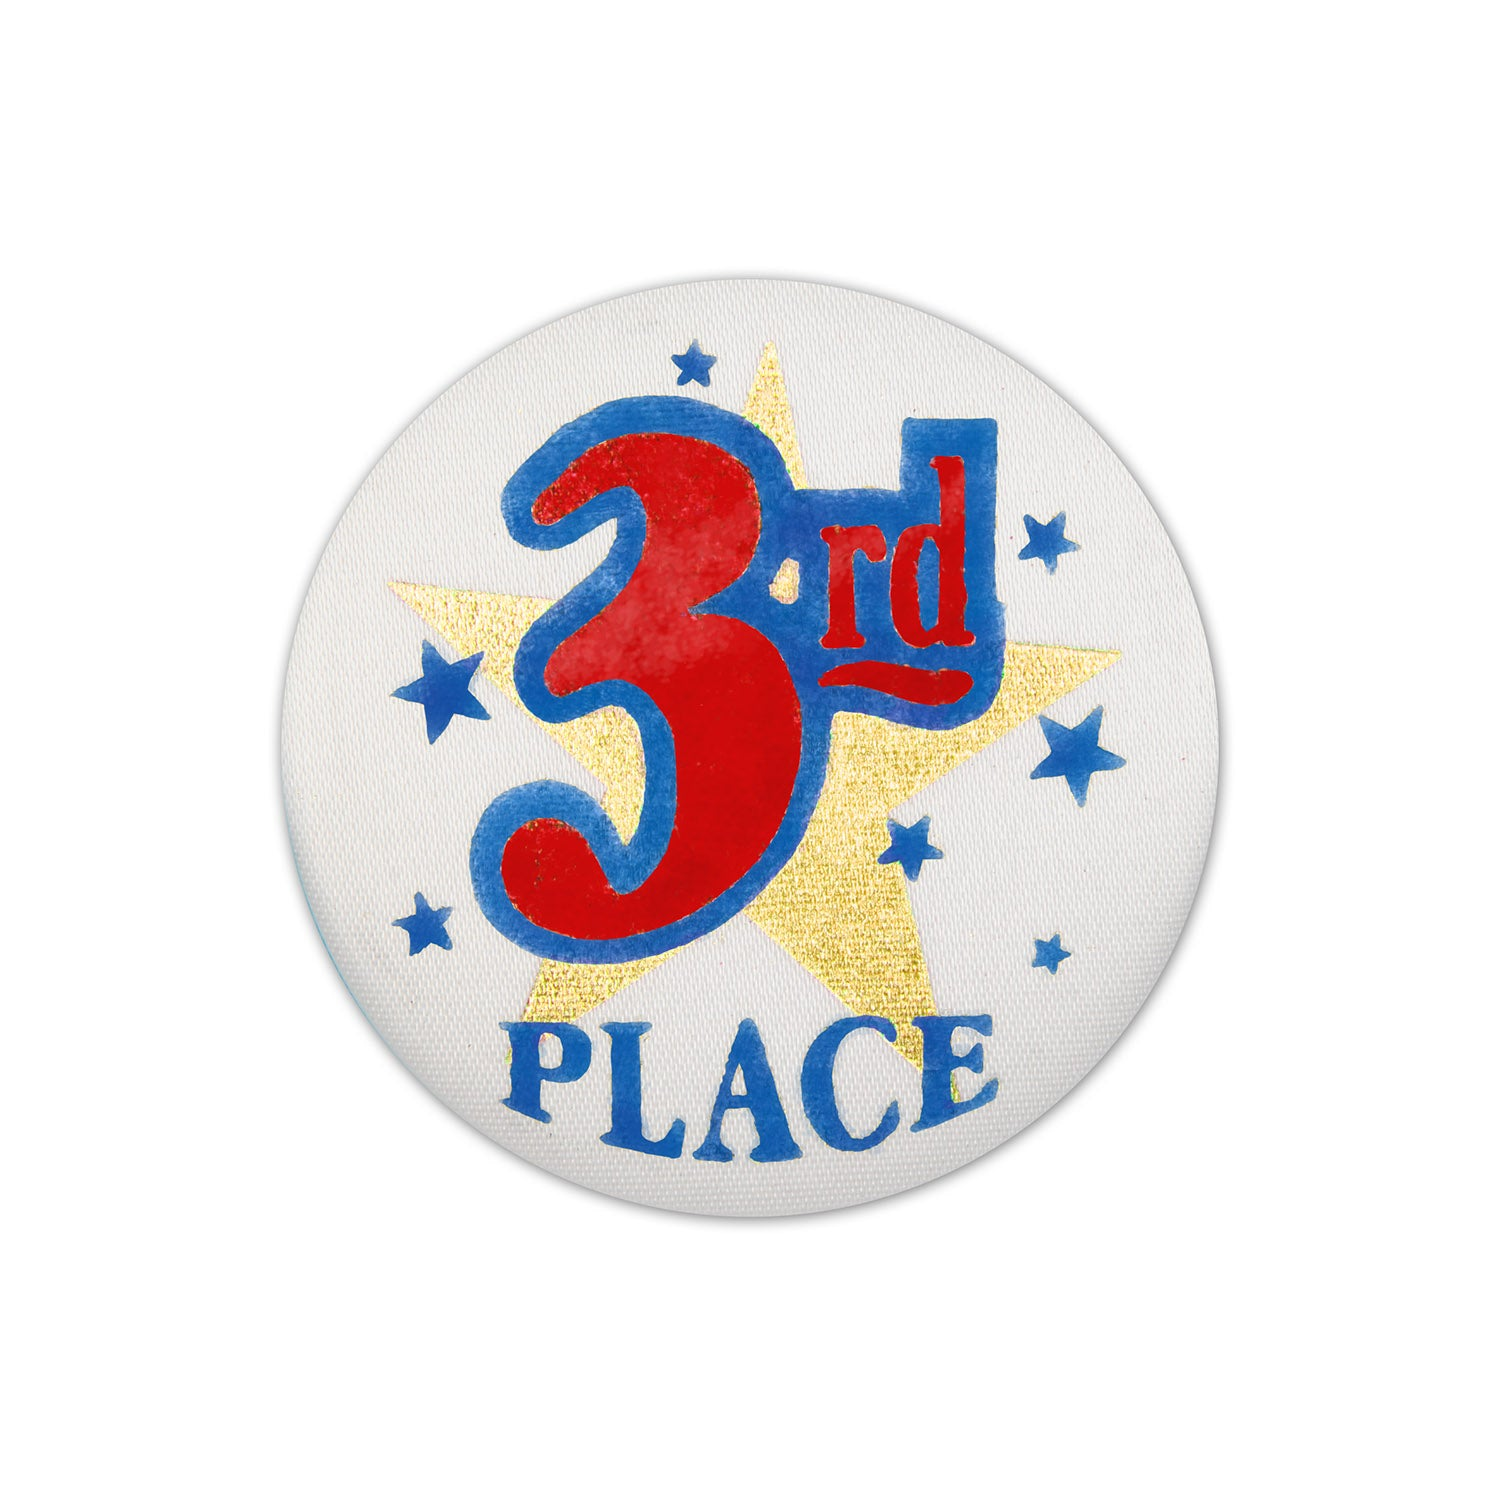 3rd Place Satin Button by Beistle - Sports Theme Decorations